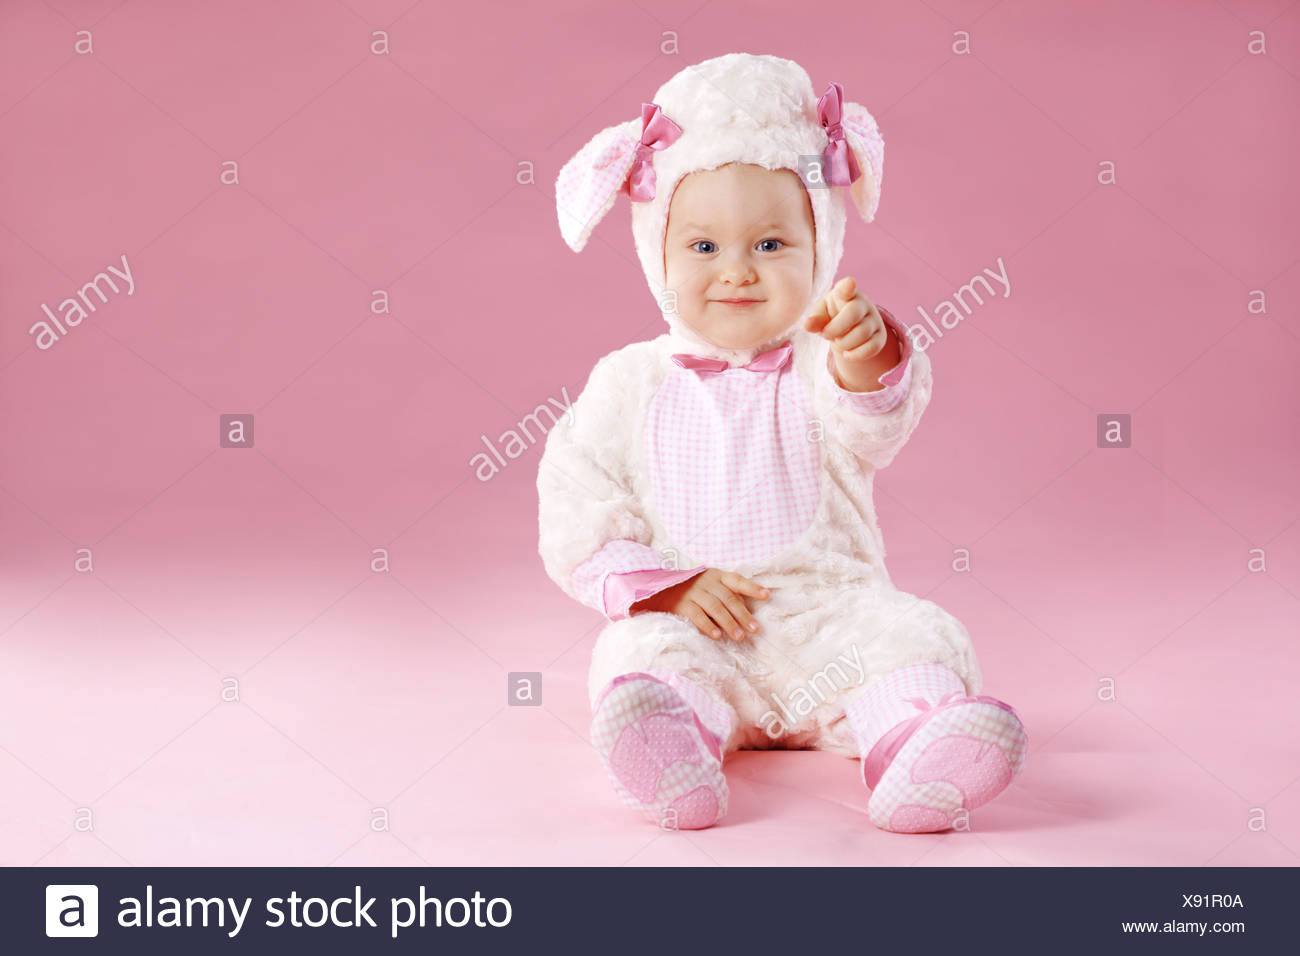 Very cute baby wearing sheep costume  sc 1 st  Alamy & Very cute baby wearing sheep costume Stock Photo: 280937786 - Alamy